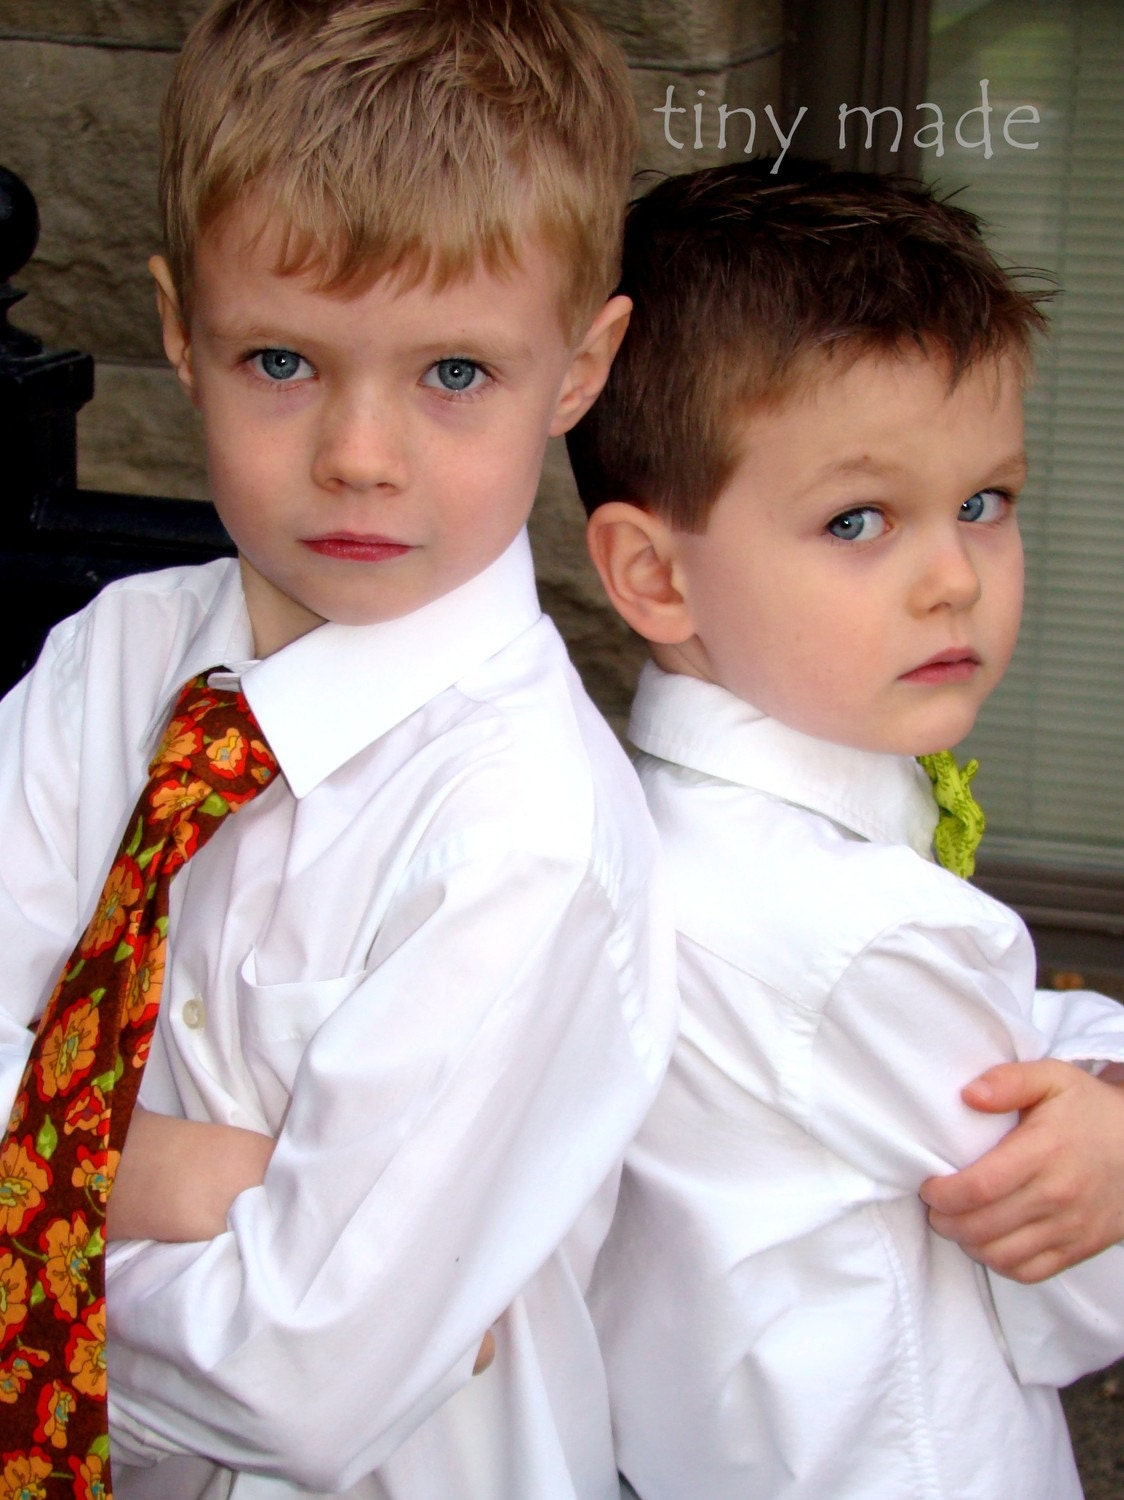 Ties for your Little Guy